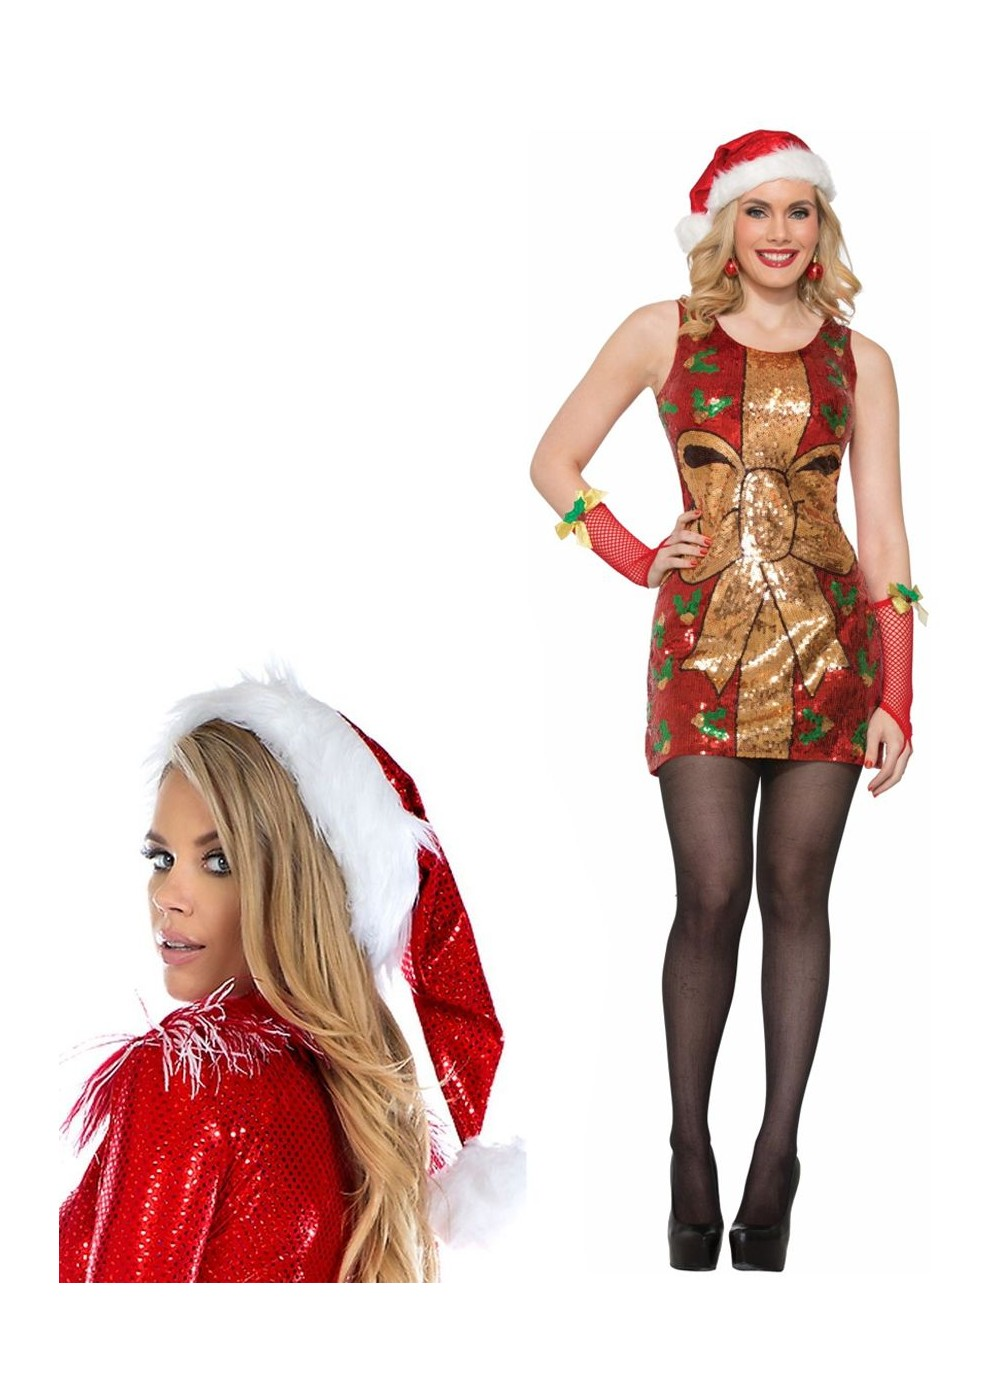 8451a8649a9 Christmas Present Women Dress and Iridescent Sparkle Santa Hat ...